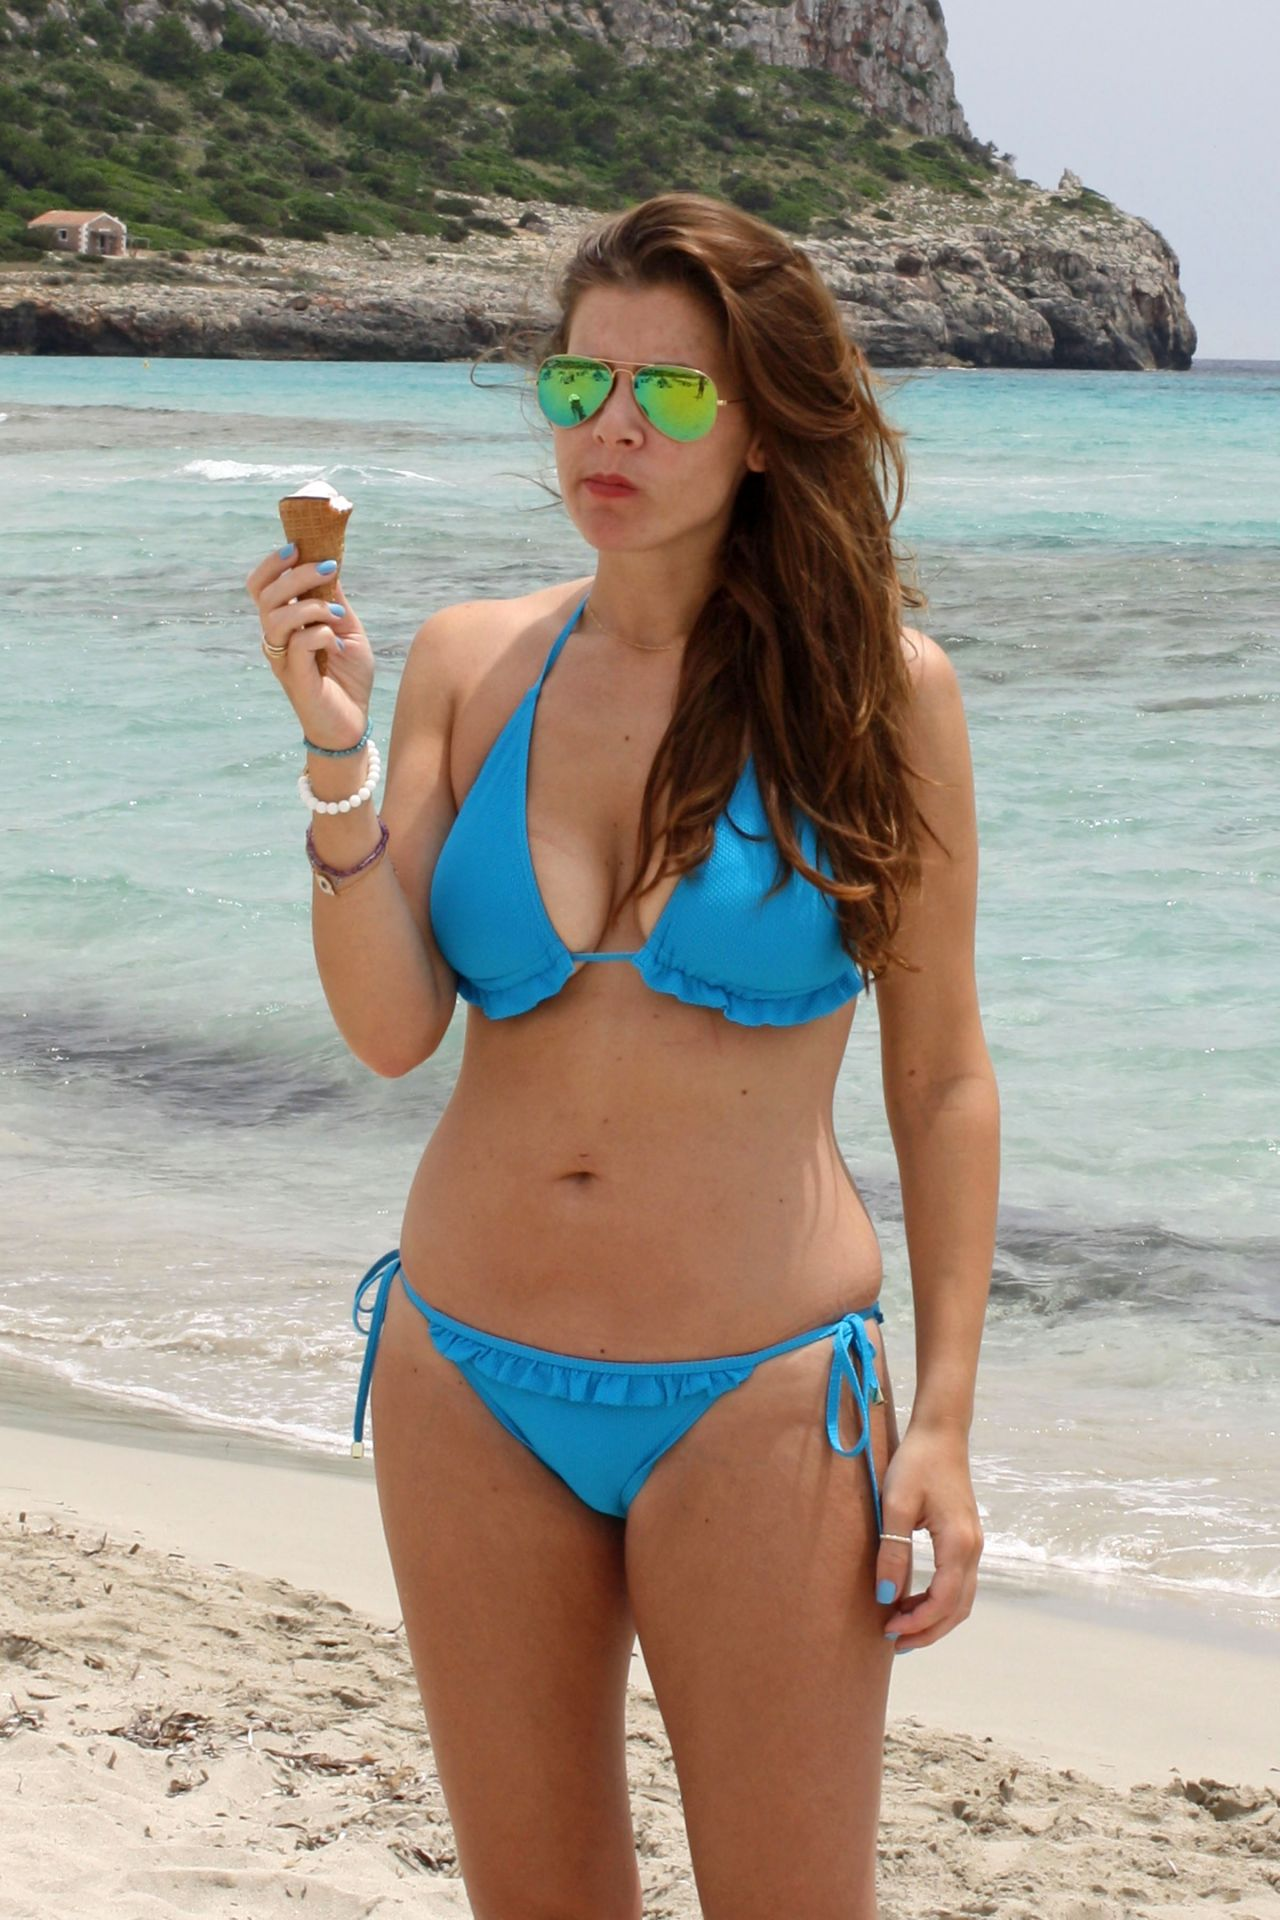 Imogen Thomas in a Blue Bikini - Eating a Ice Cream on a beach in Spain - June 2014